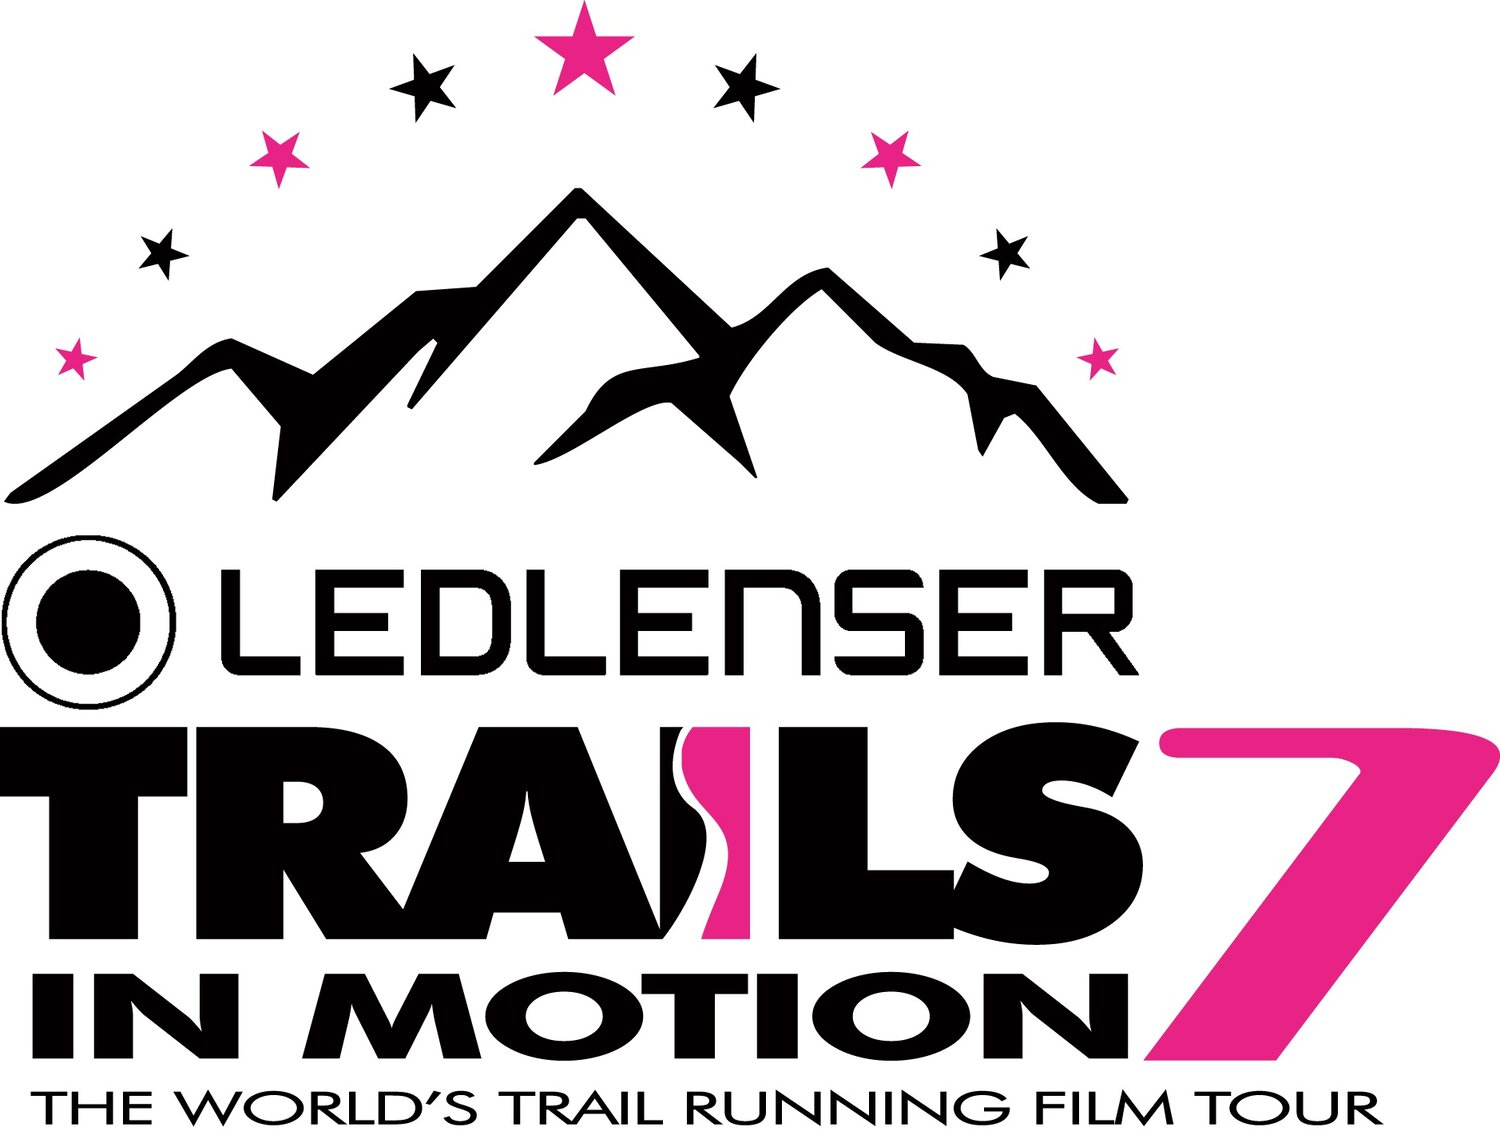 Tournée internationale de films de trail